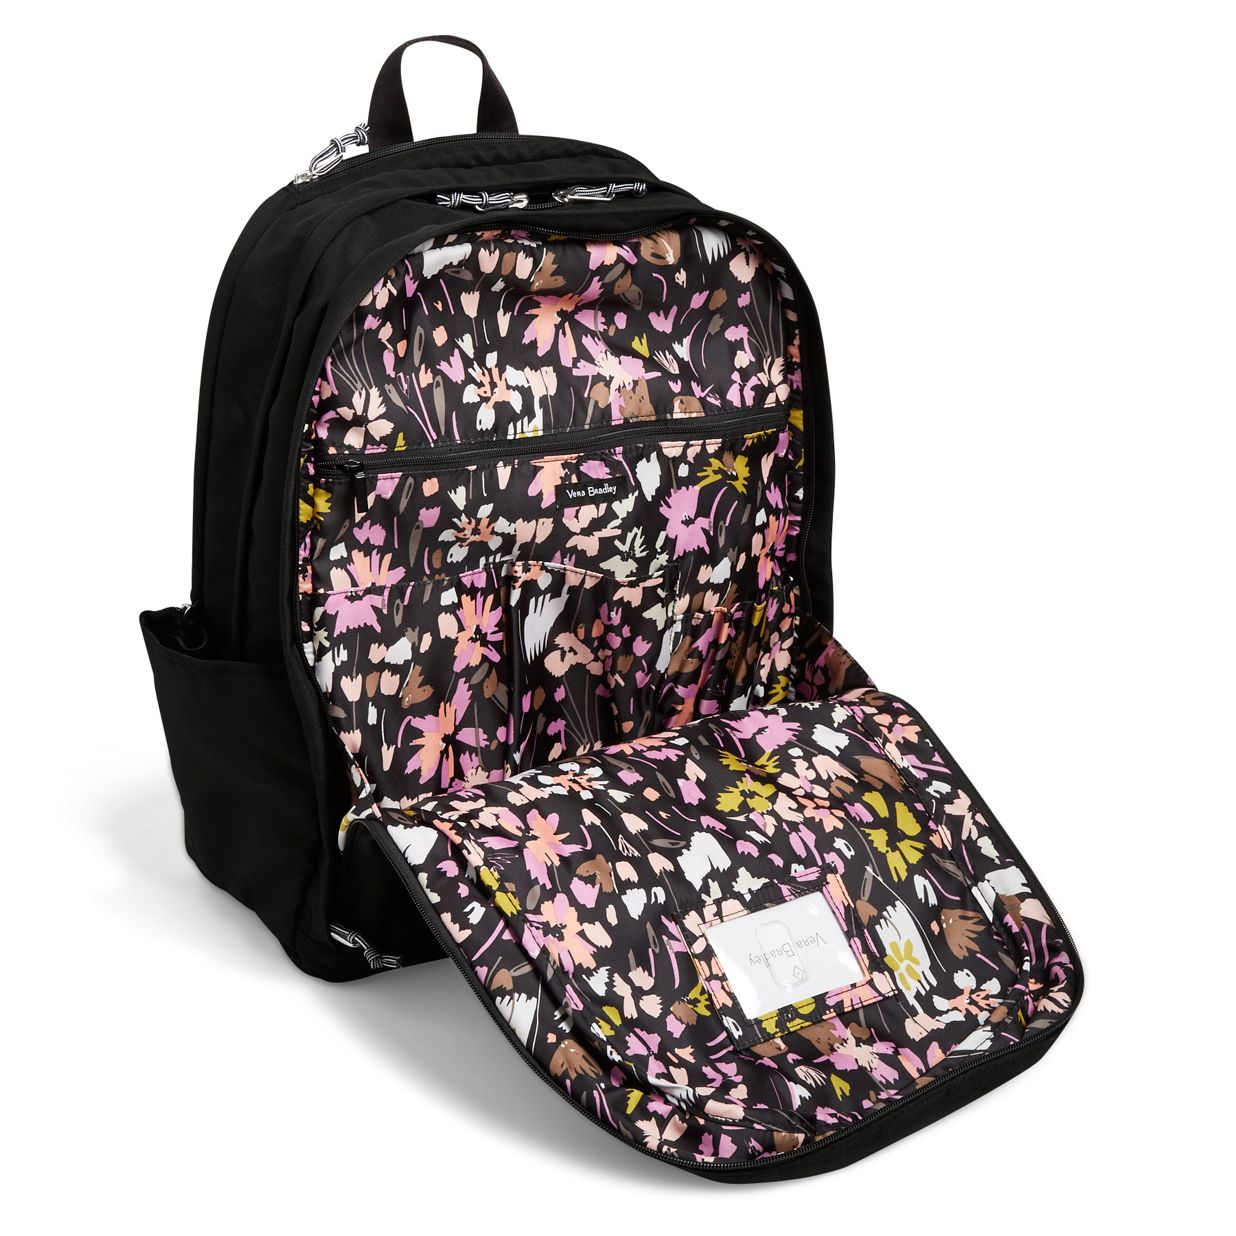 ... Image of Lighten Up Grand Backpack in Black ... 023a18a4f30b3